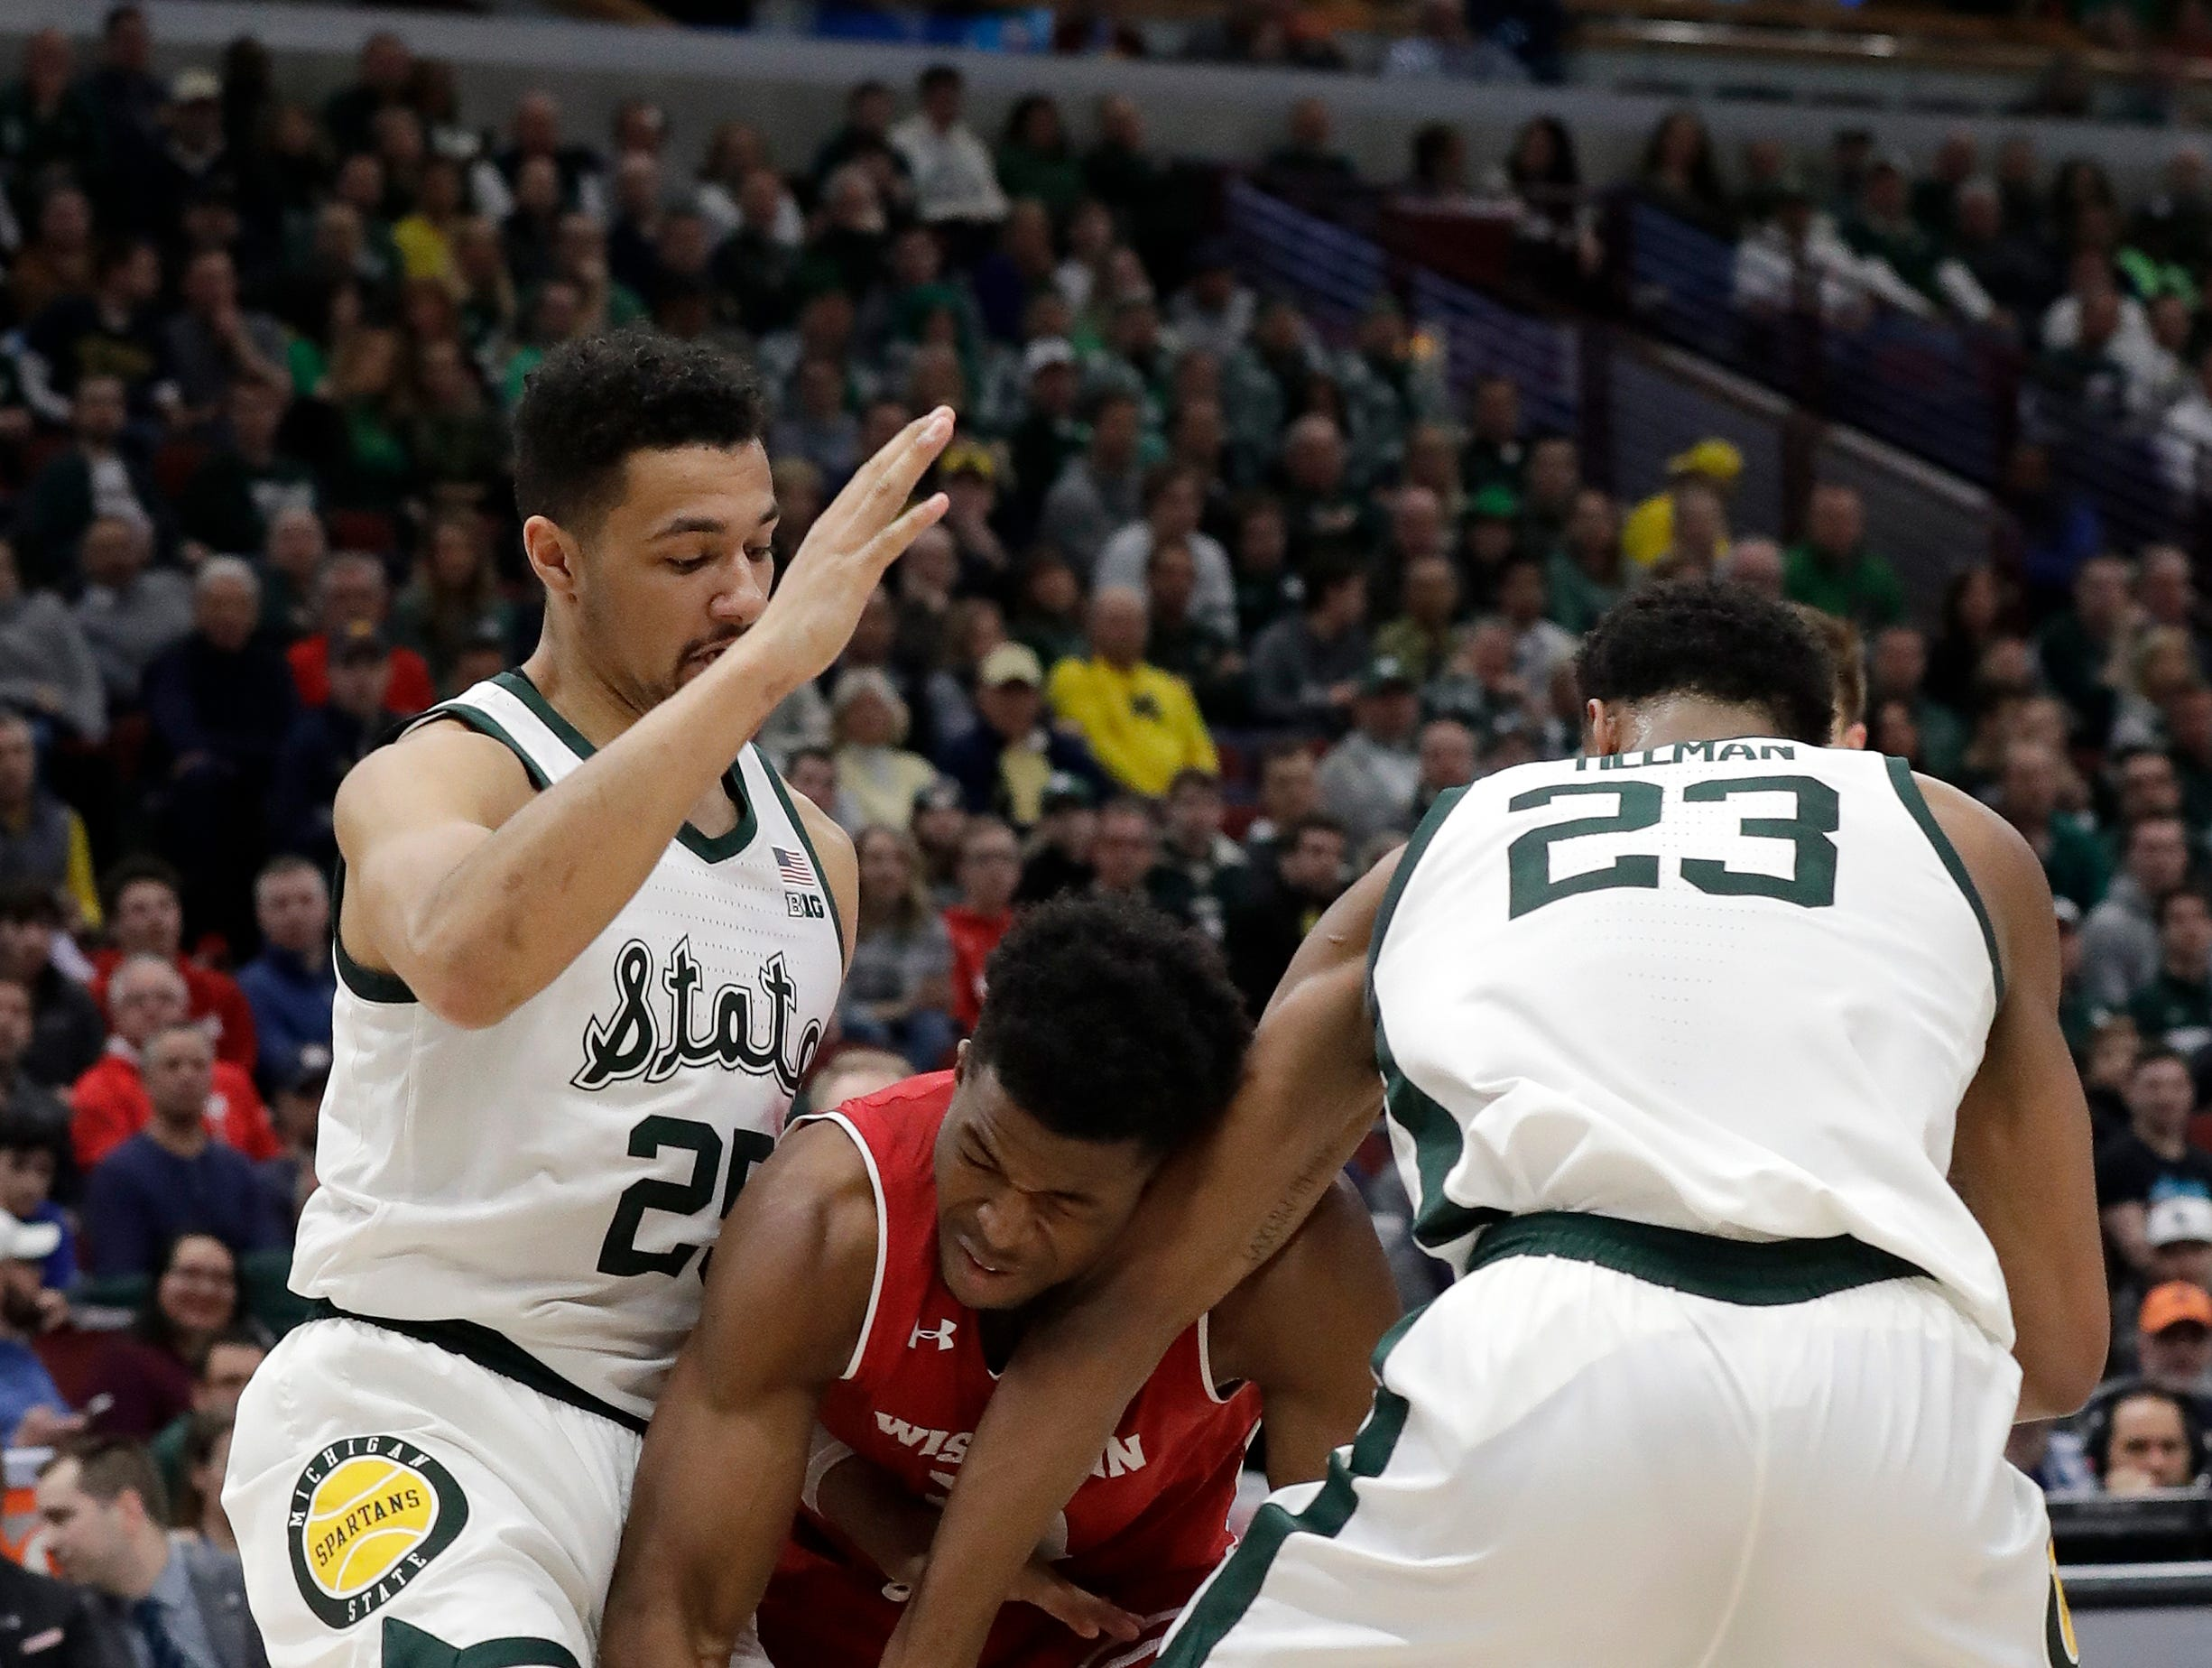 Wisconsin's Khalil Iverson goes after a loose ball against Michigan State's Kenny Goins (25) and Xavier Tillman (23) during the first half of an NCAA college basketball game in the semifinals of the Big Ten Conference tournament, Saturday, March 16, 2019, in Chicago.